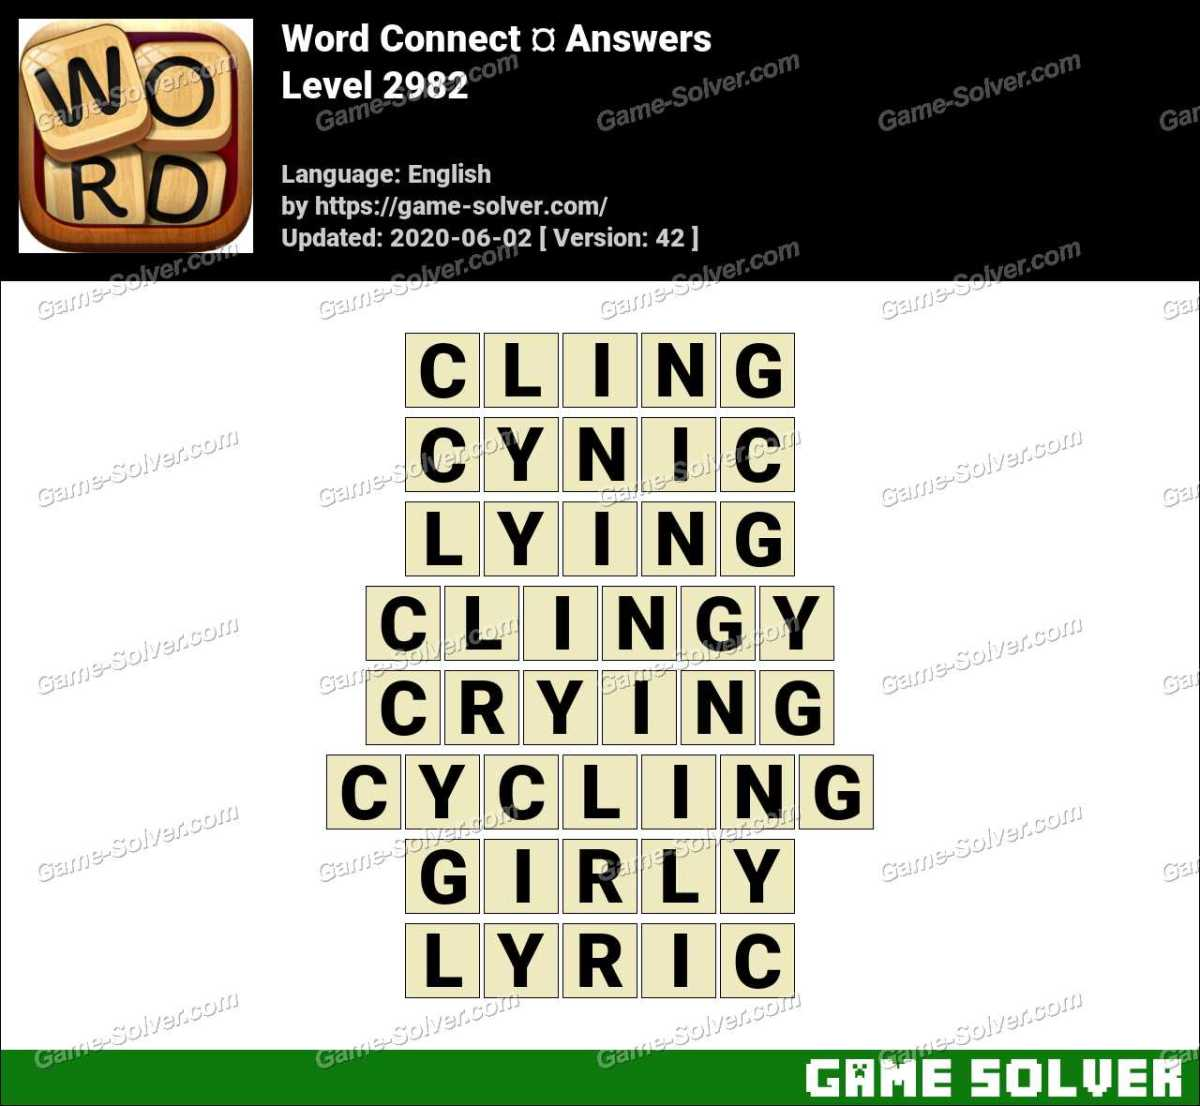 Word Connect Level 2982 Answers